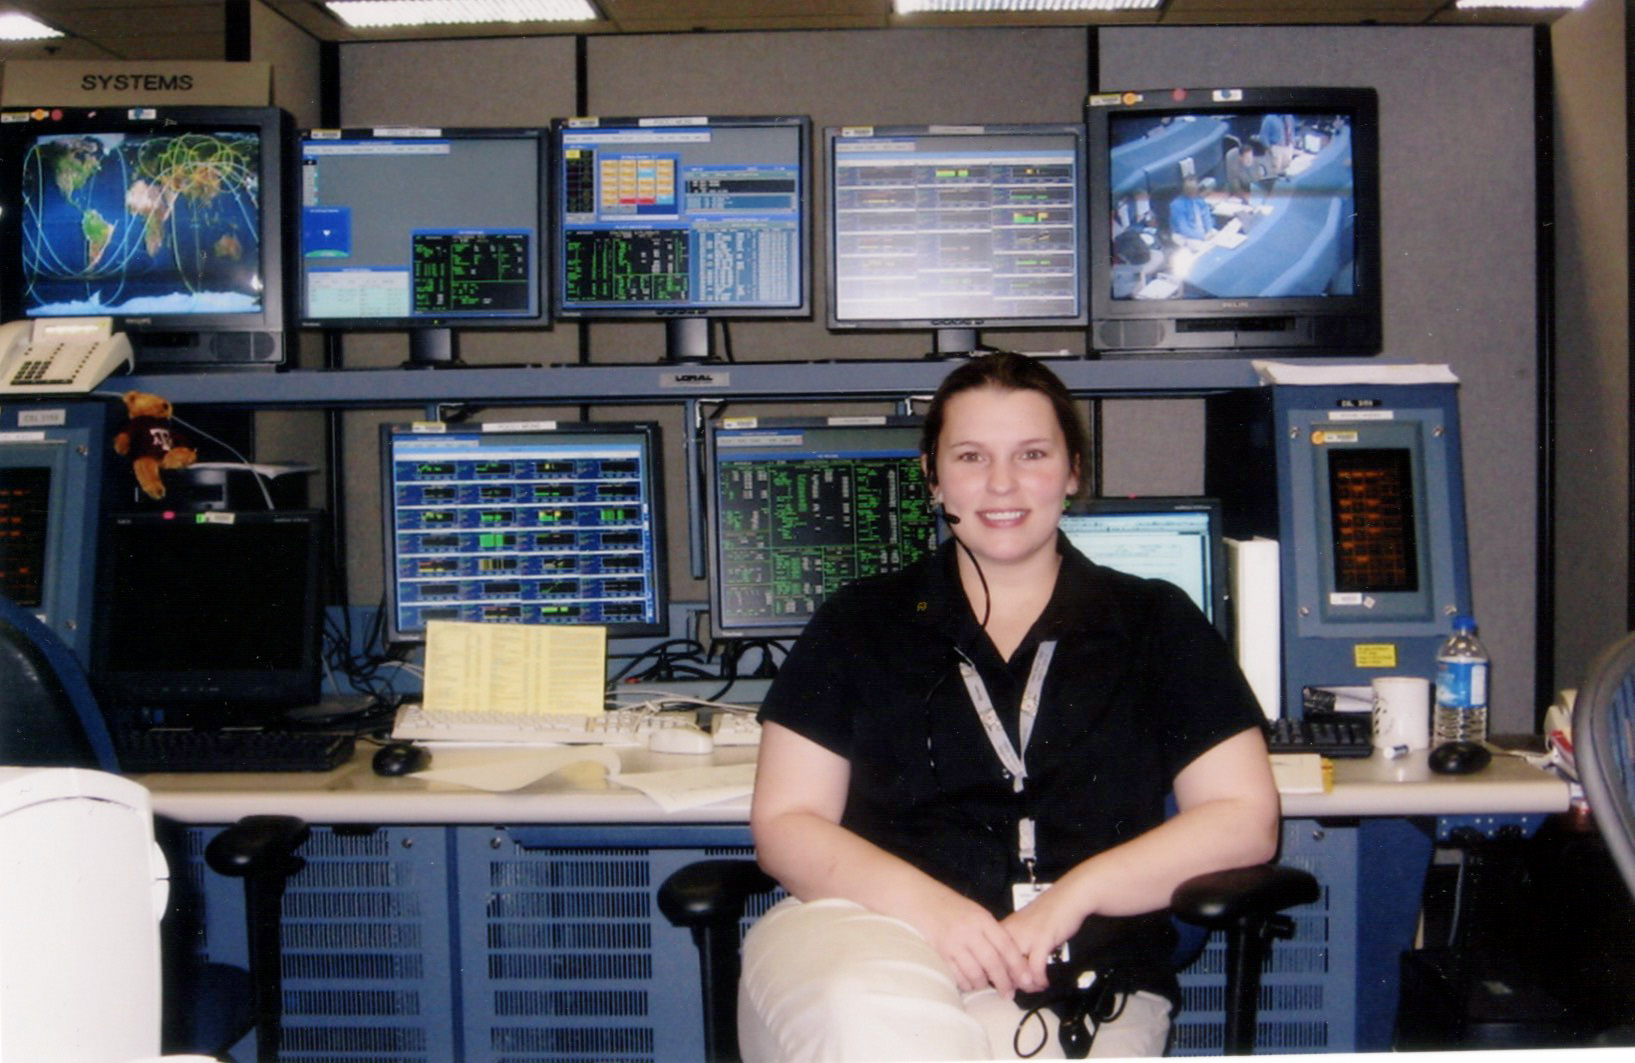 ^ While working for SpaceHab, Marie worked in the Payload Operations Control Center in Mission Control in Houston, Texas.